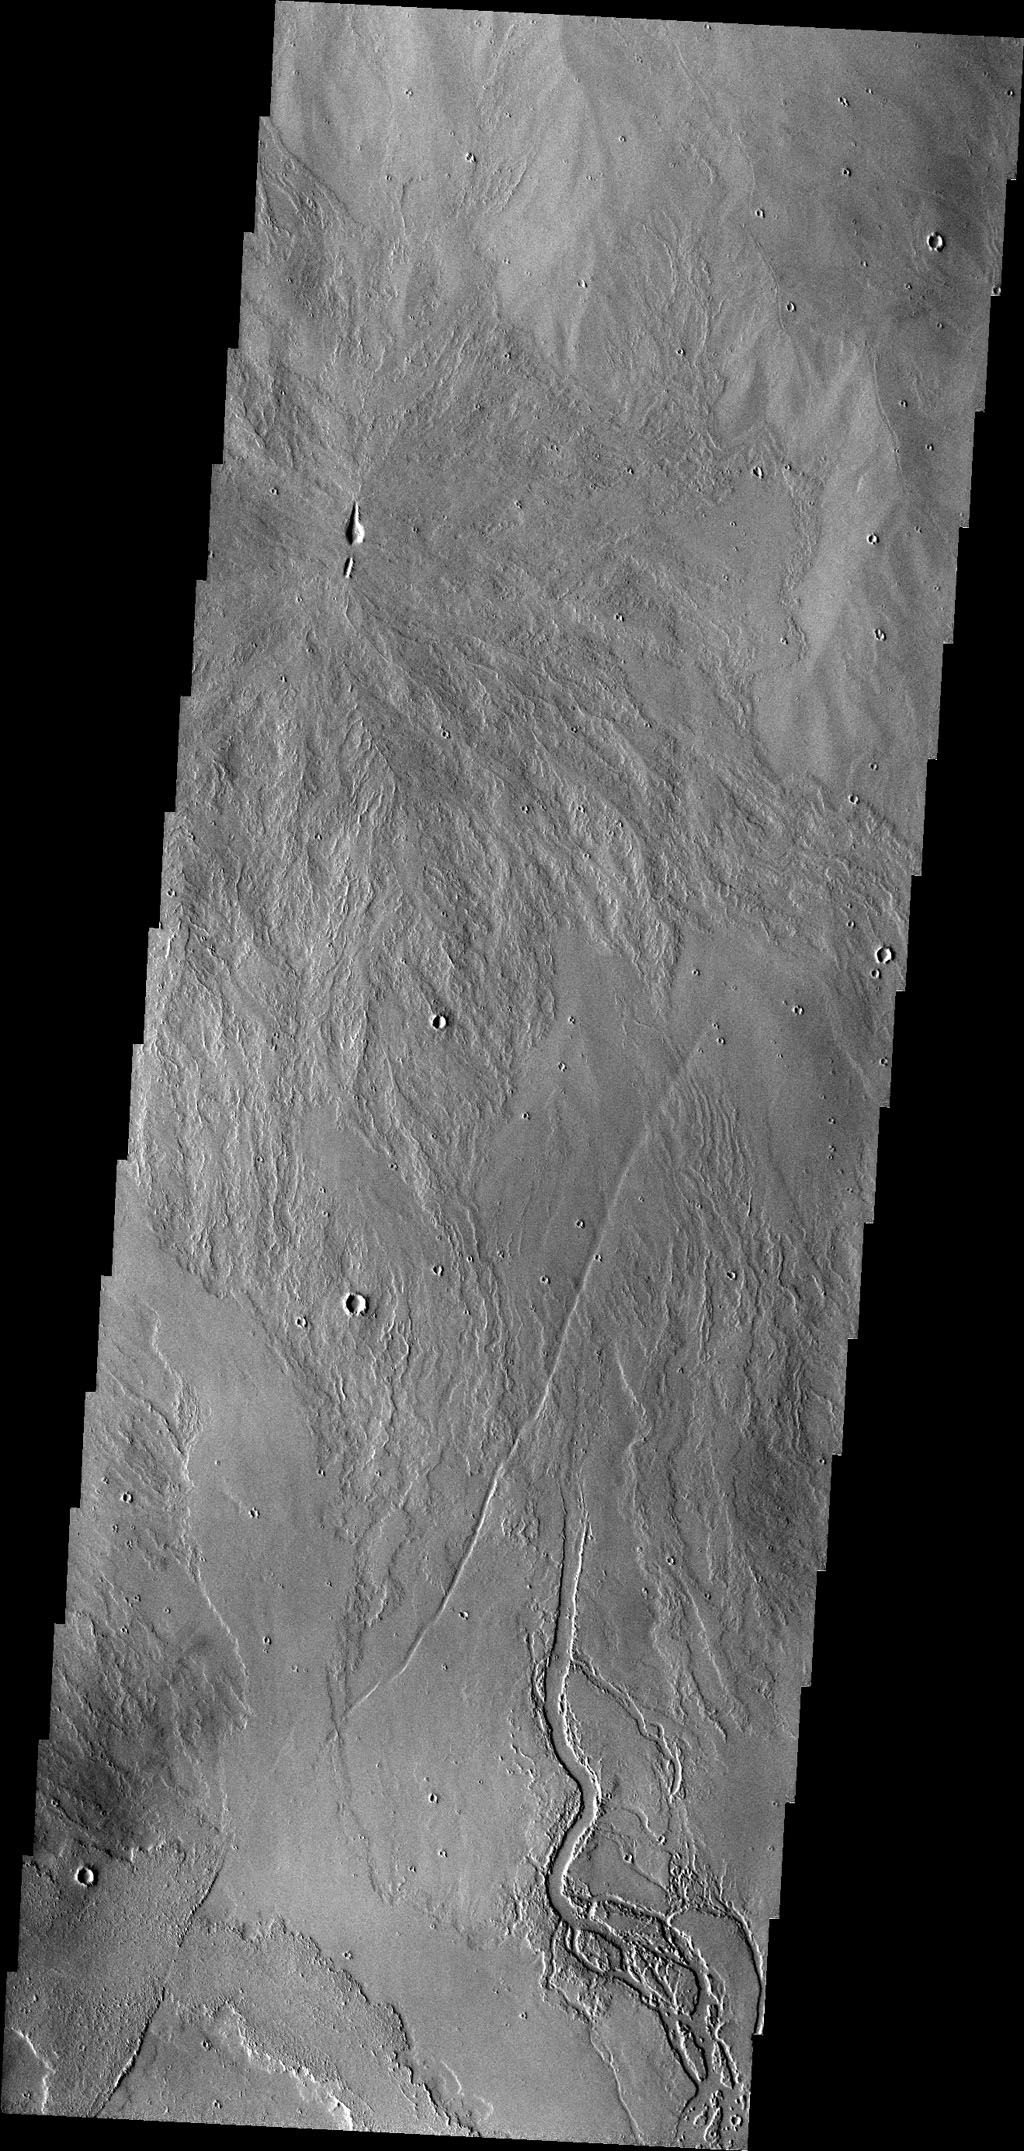 The lava channels in this image are located in the Tharsis plains as seen by NASA's 2001 Mars Odyssey spacecraft.